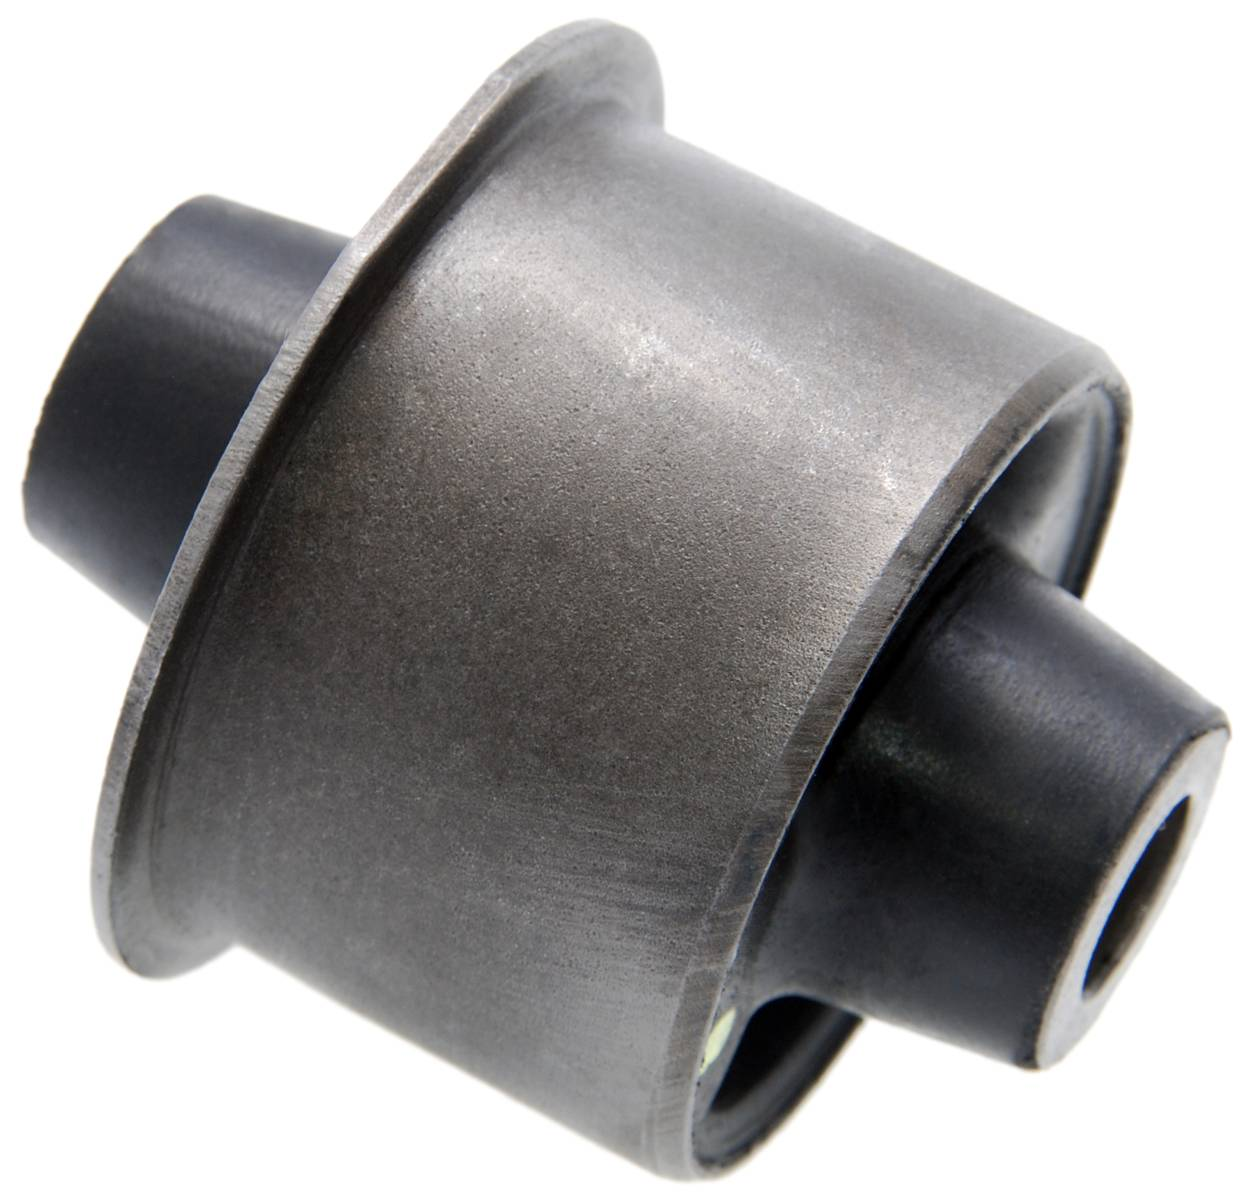 Rear Arm Bushing For Front Arm - Febest # MZAB-EPB